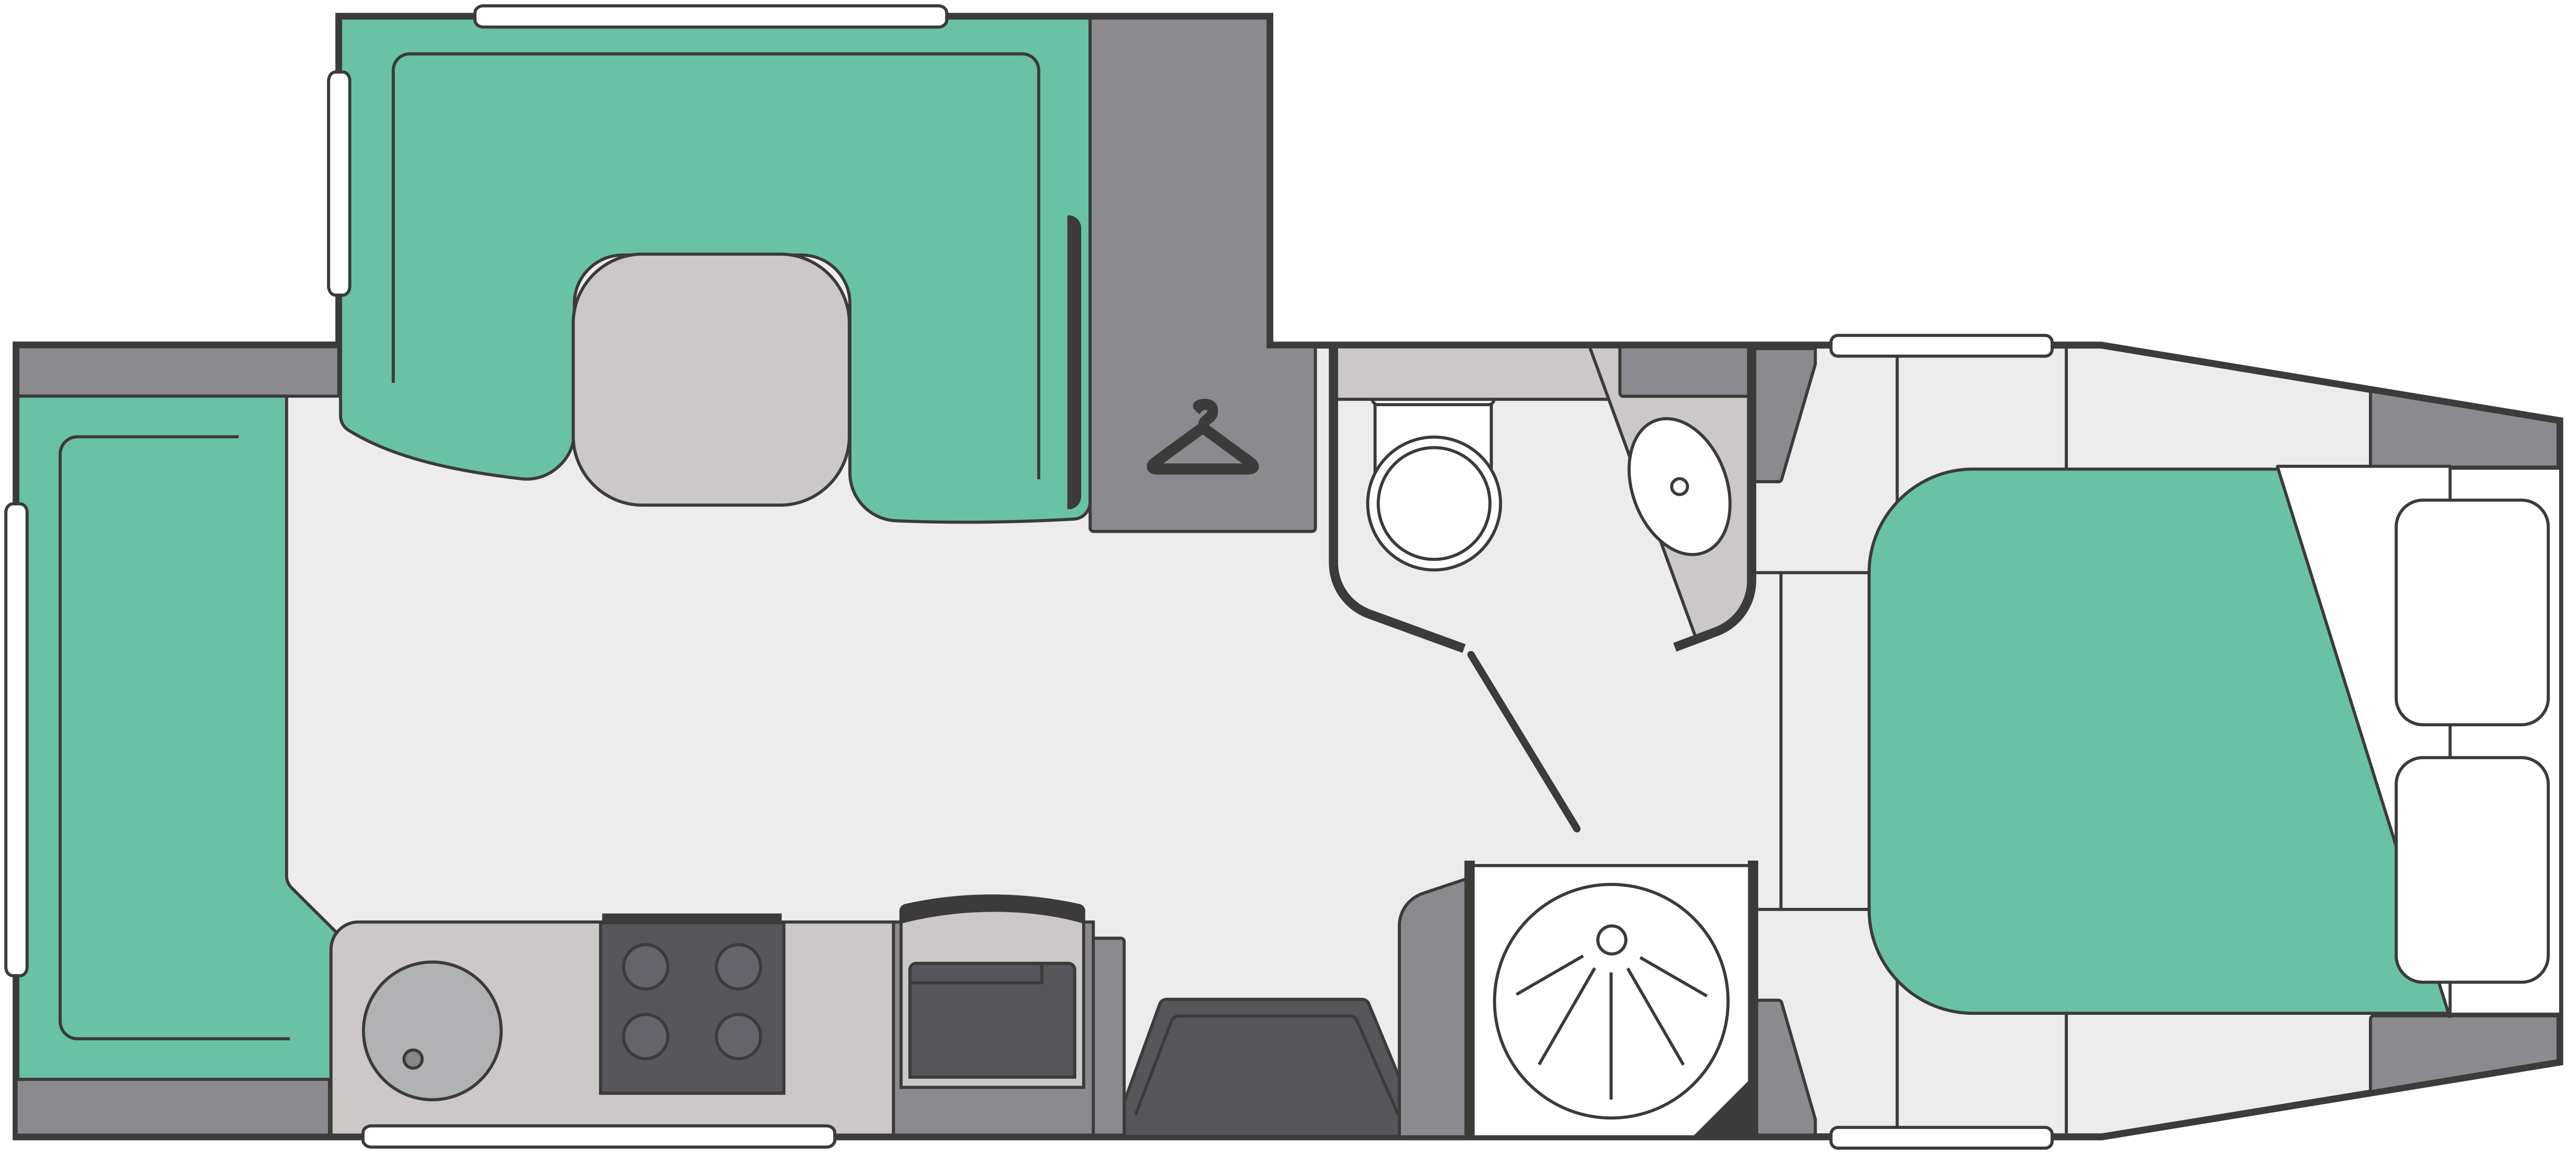 Fifth Wheel Co Dreamseeker layout